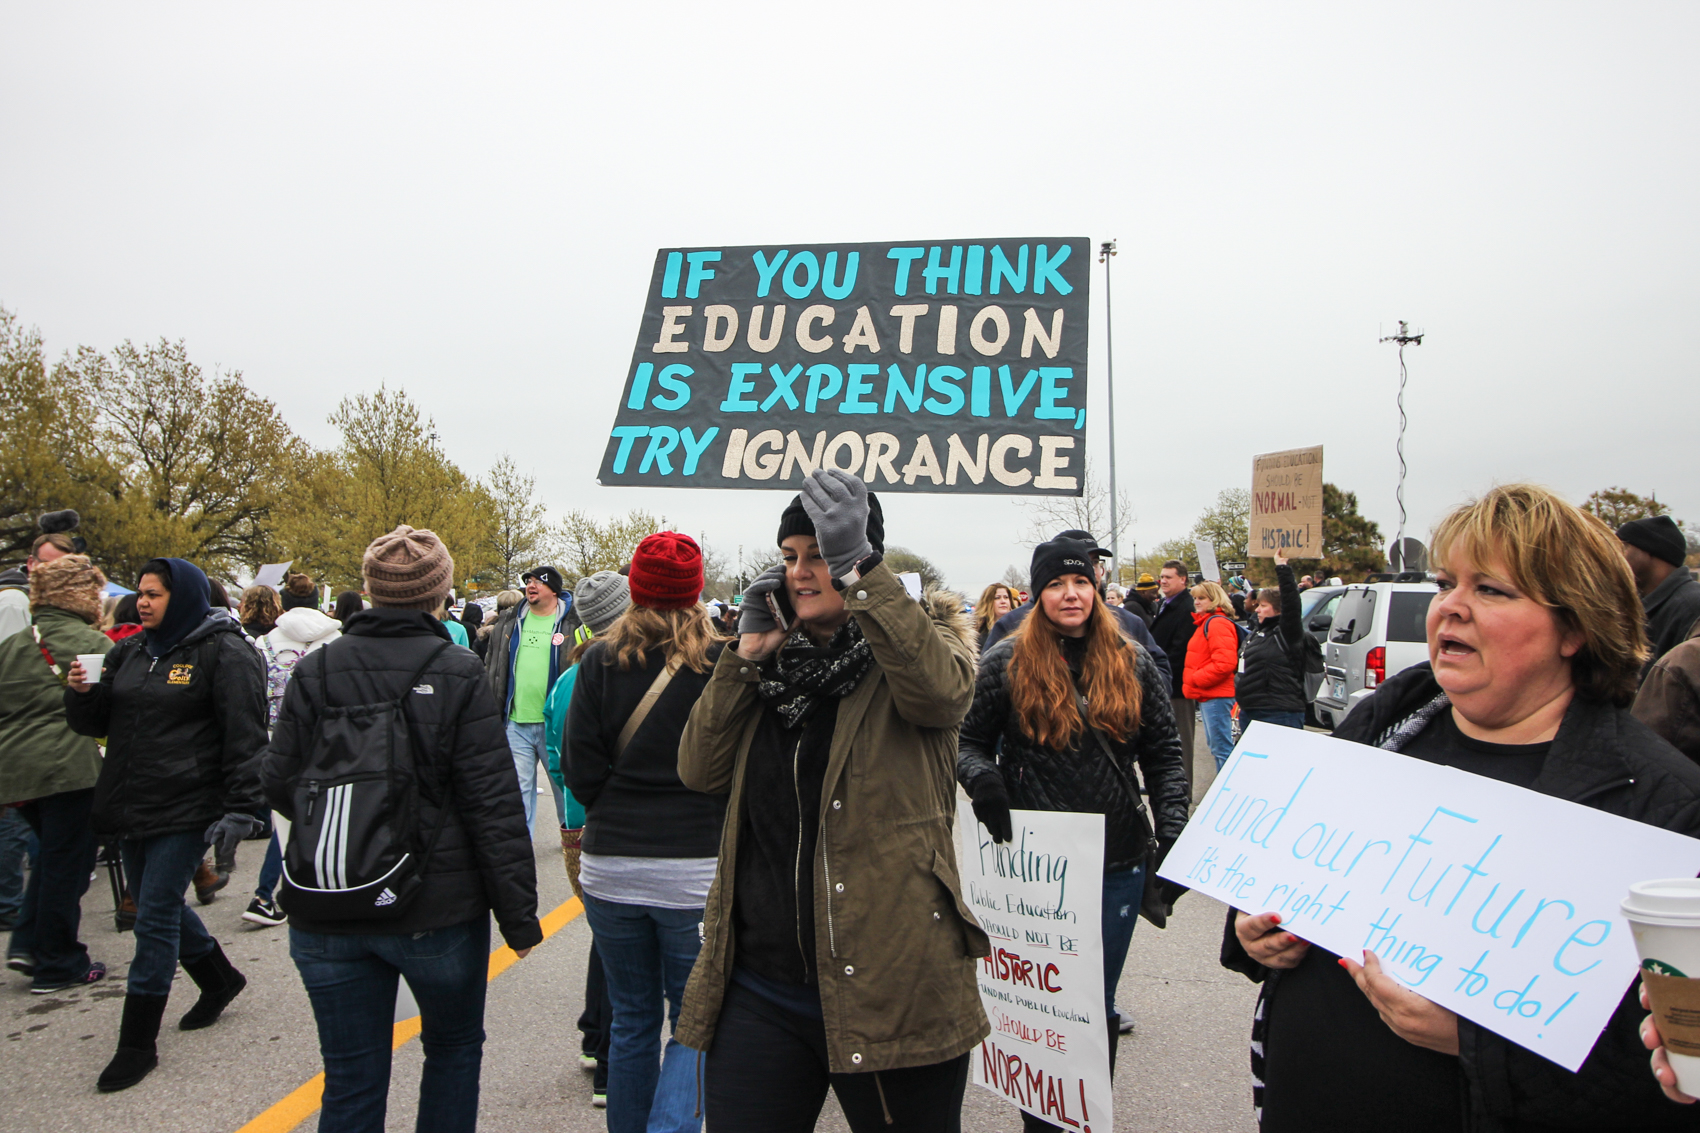 A protestor carries a sign in a picket line.